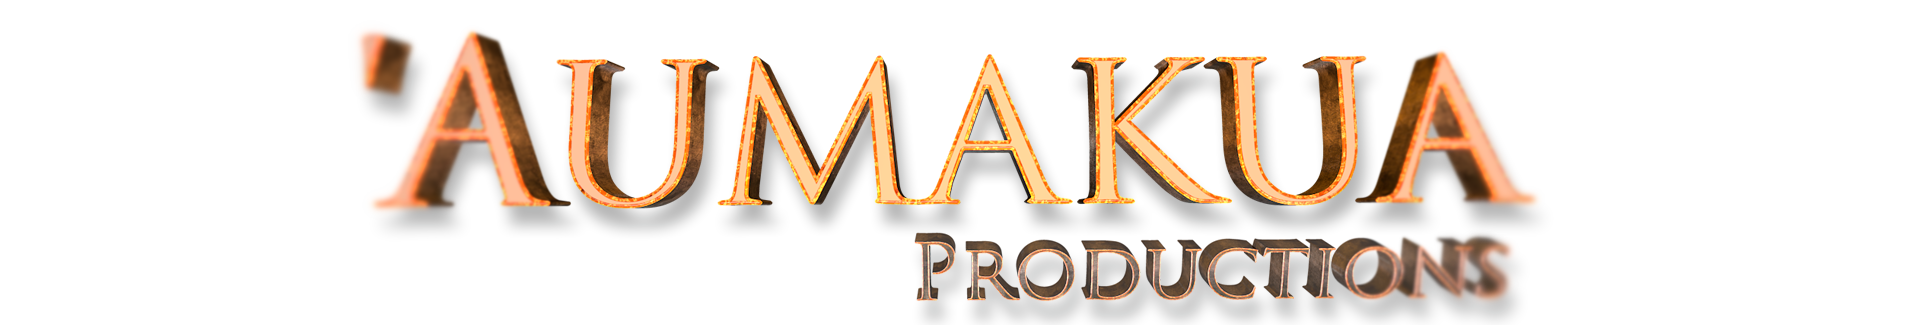 'Aumakua Productions